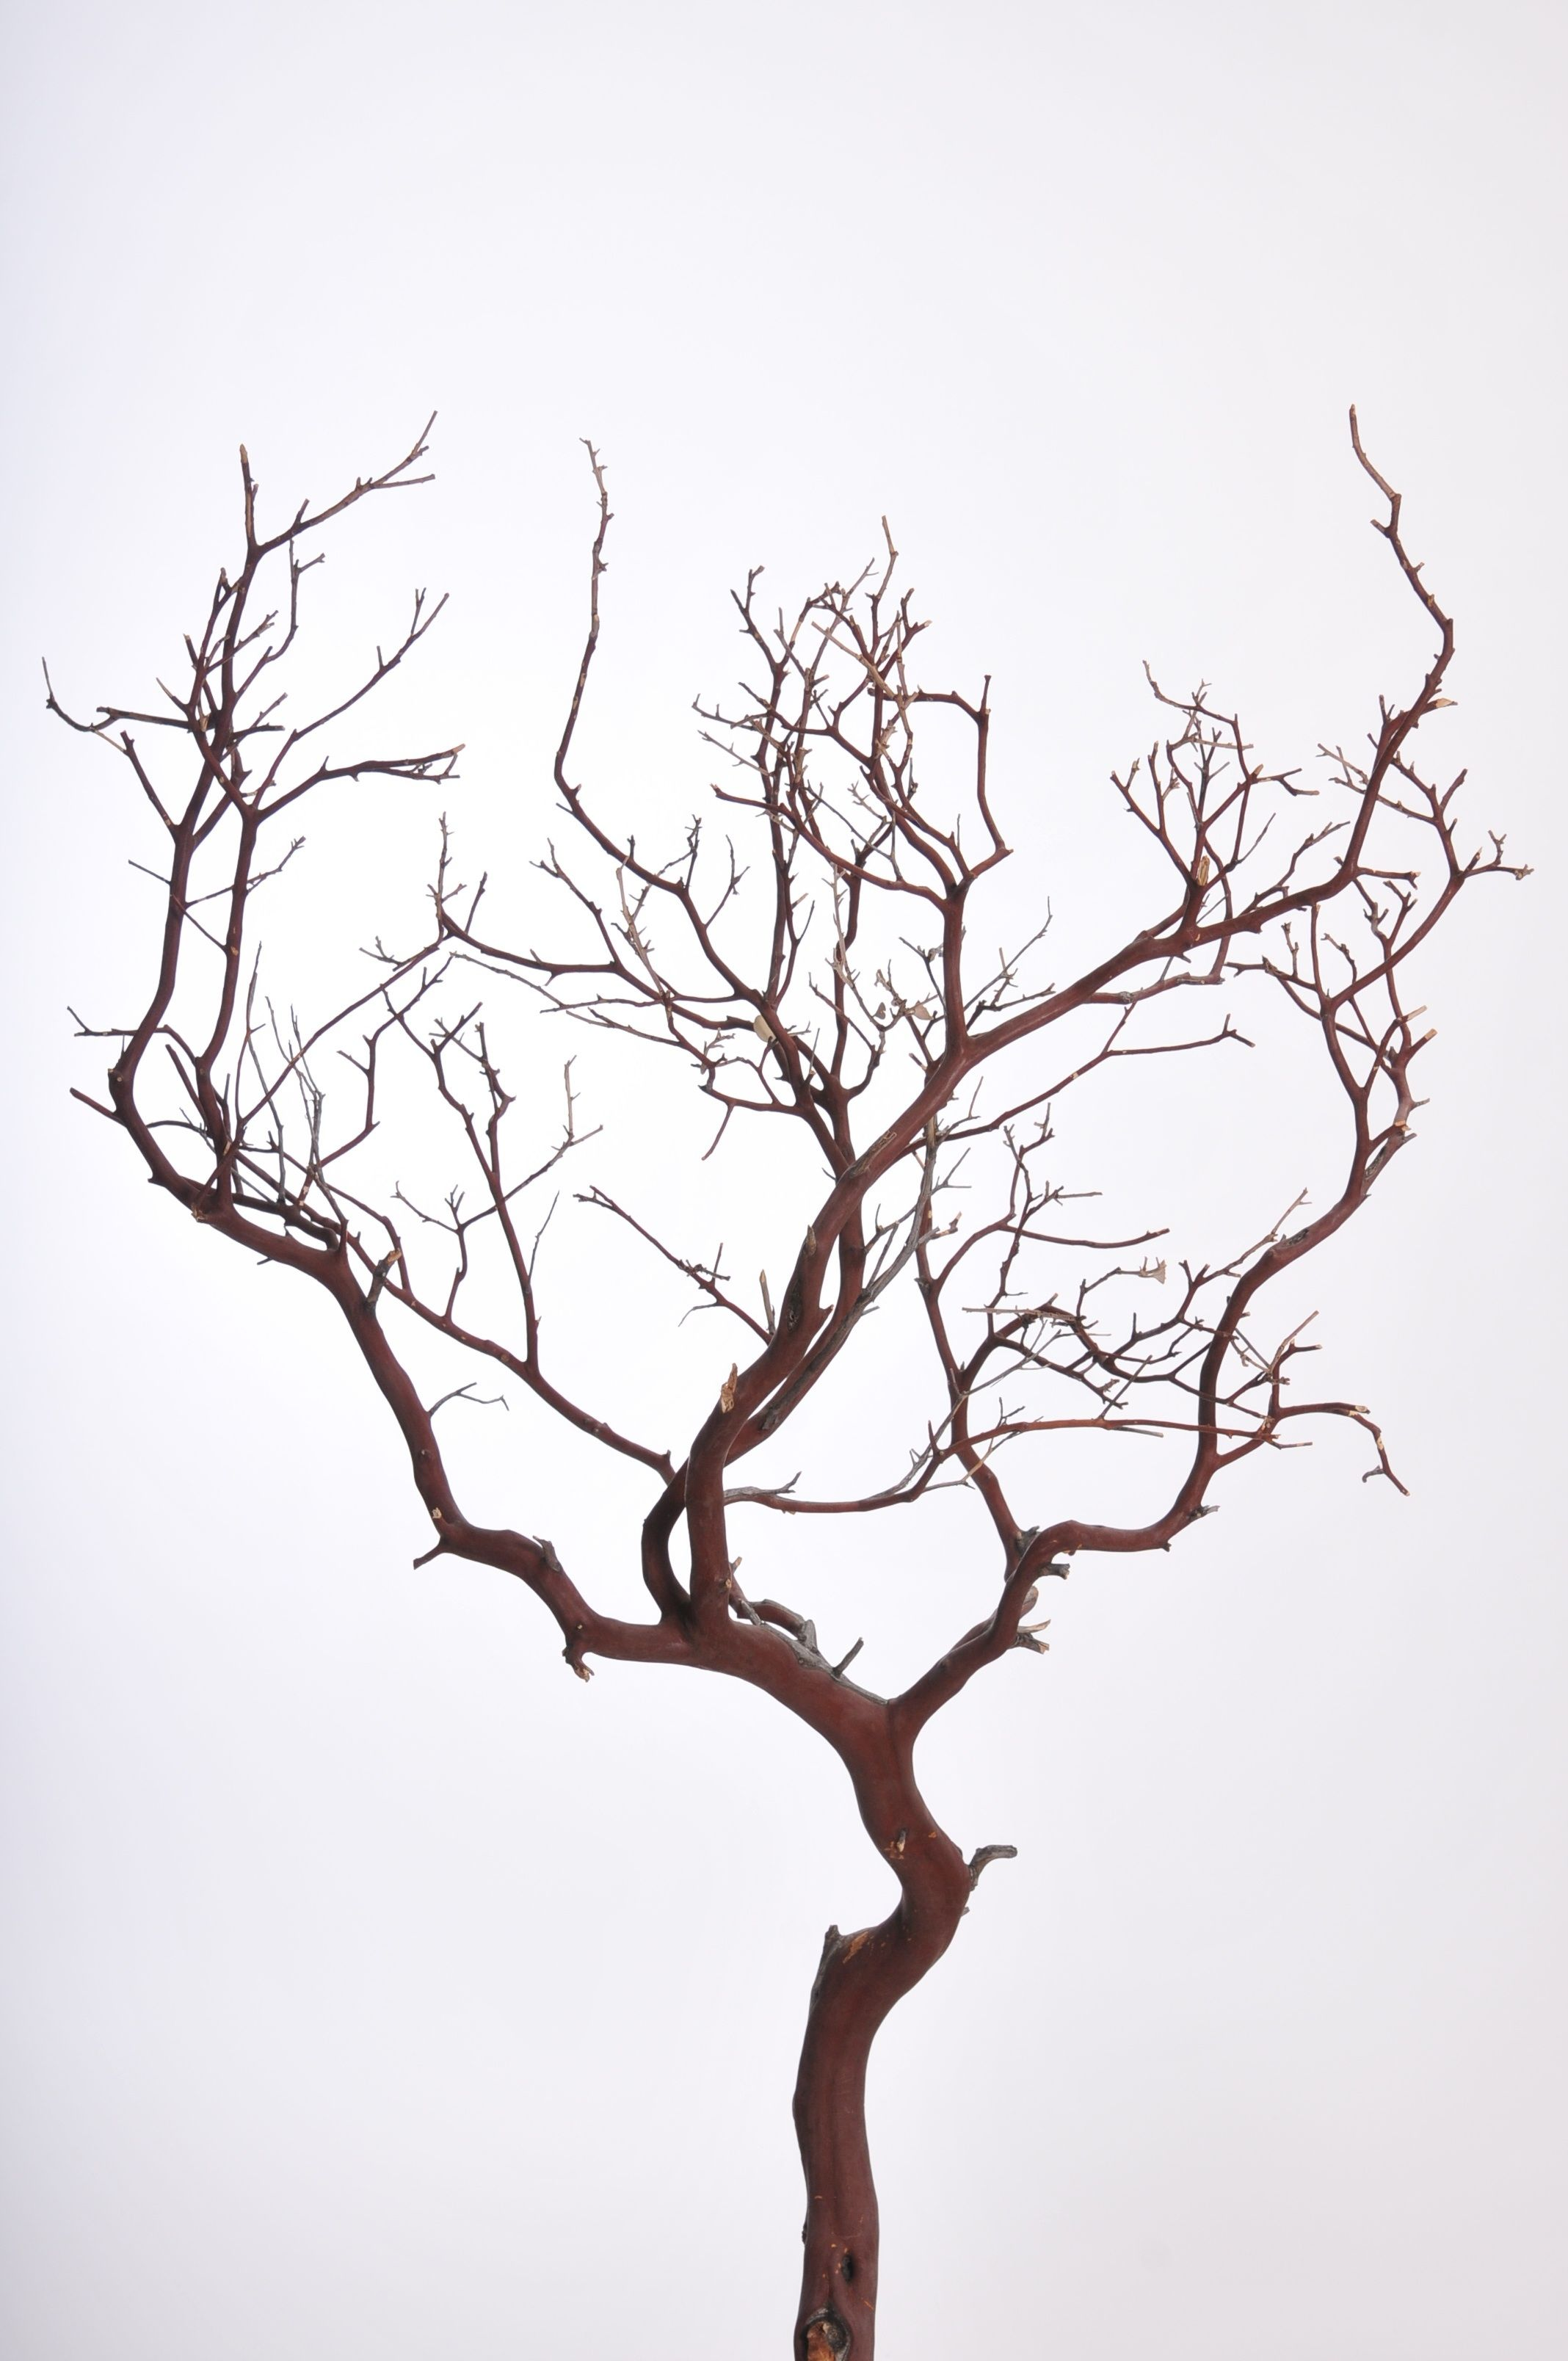 Manzanita Branches In Natural Coloring Dried Preserved Note Yes These Are Expensive And The Branch Centerpieces Wedding Manzanita Branches Branch Decor